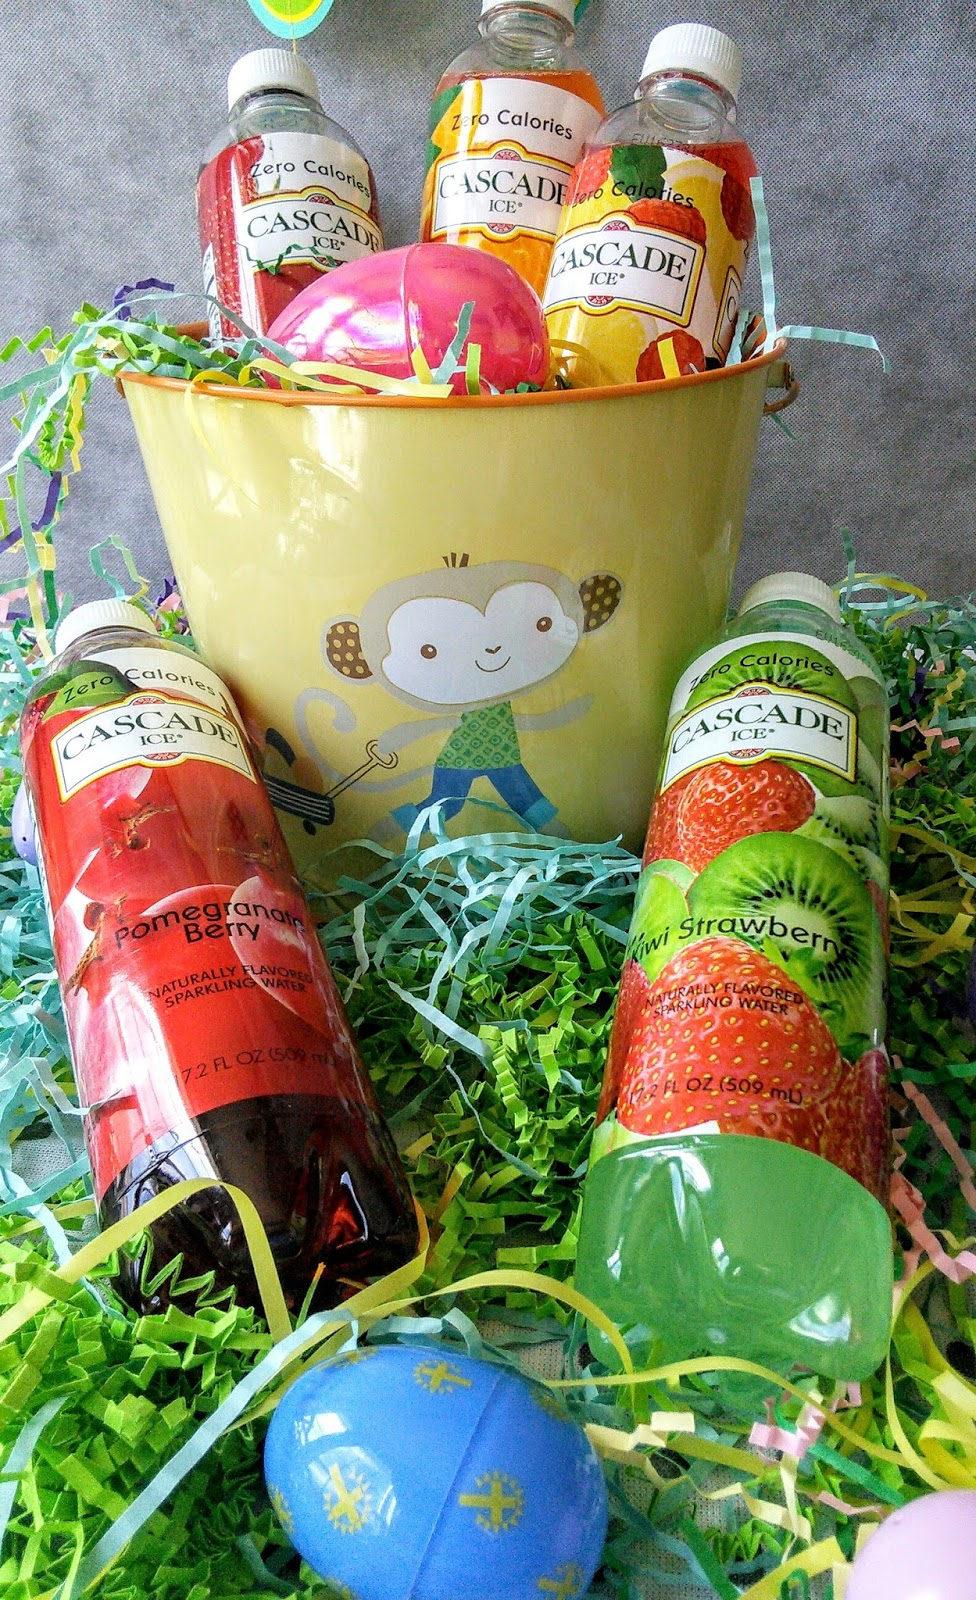 Mom knows best healthy easter basket ideas check out some great items to put in the easter baskets that are not loaded with sugar negle Choice Image